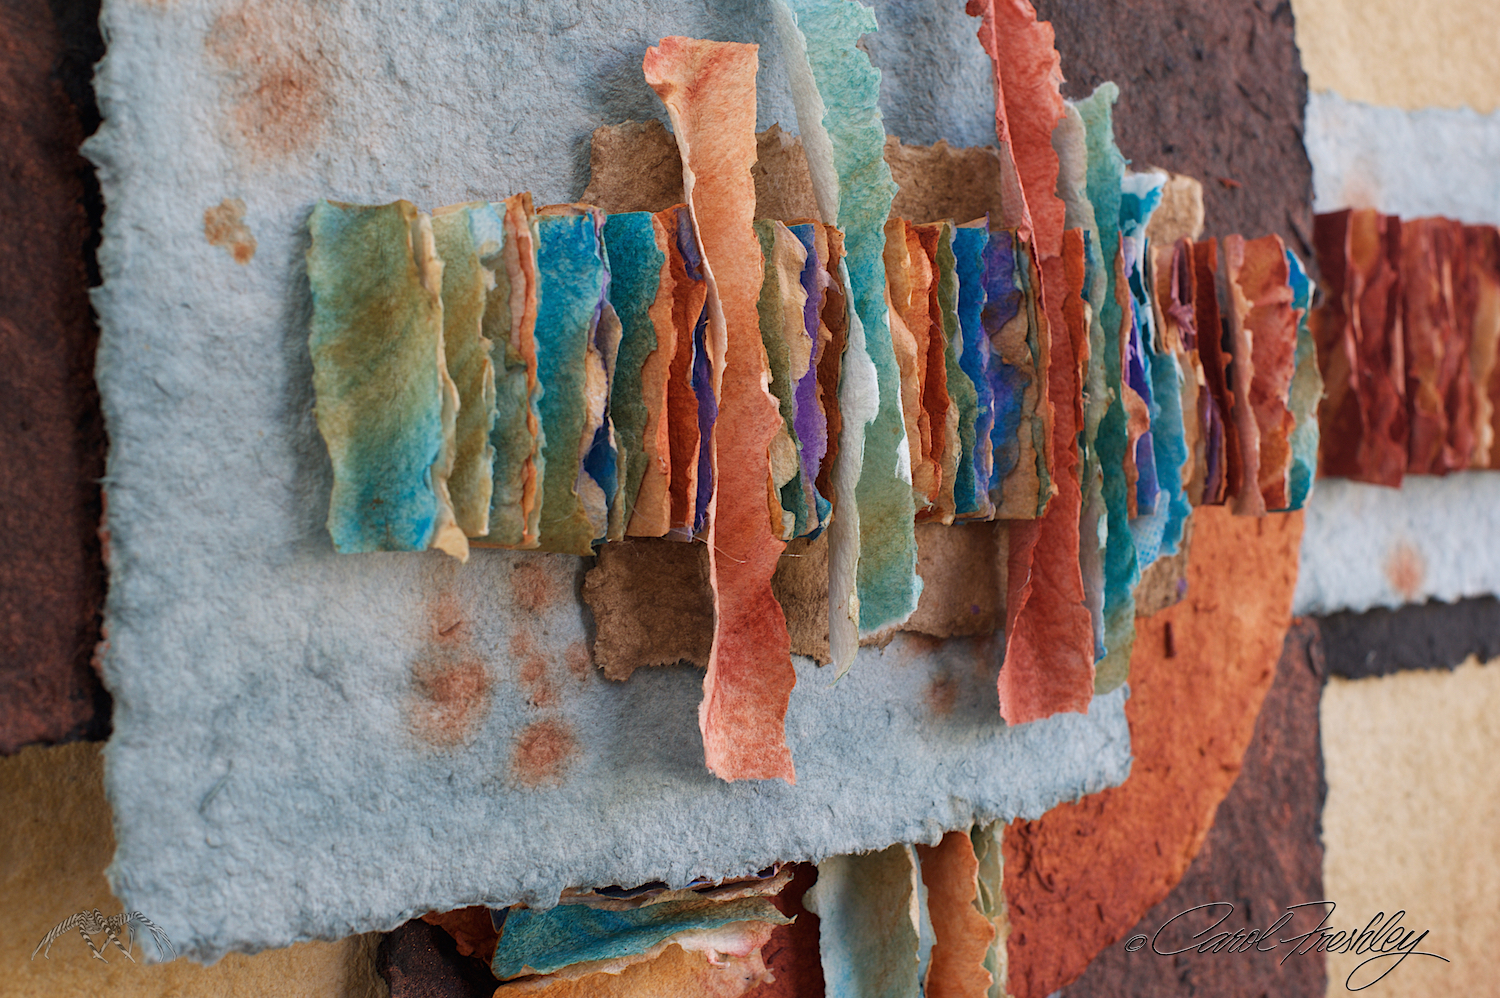 Small excerpt of a much larger art piece..  I was drawn to the color and imagination of the artist.  Lots of texture!